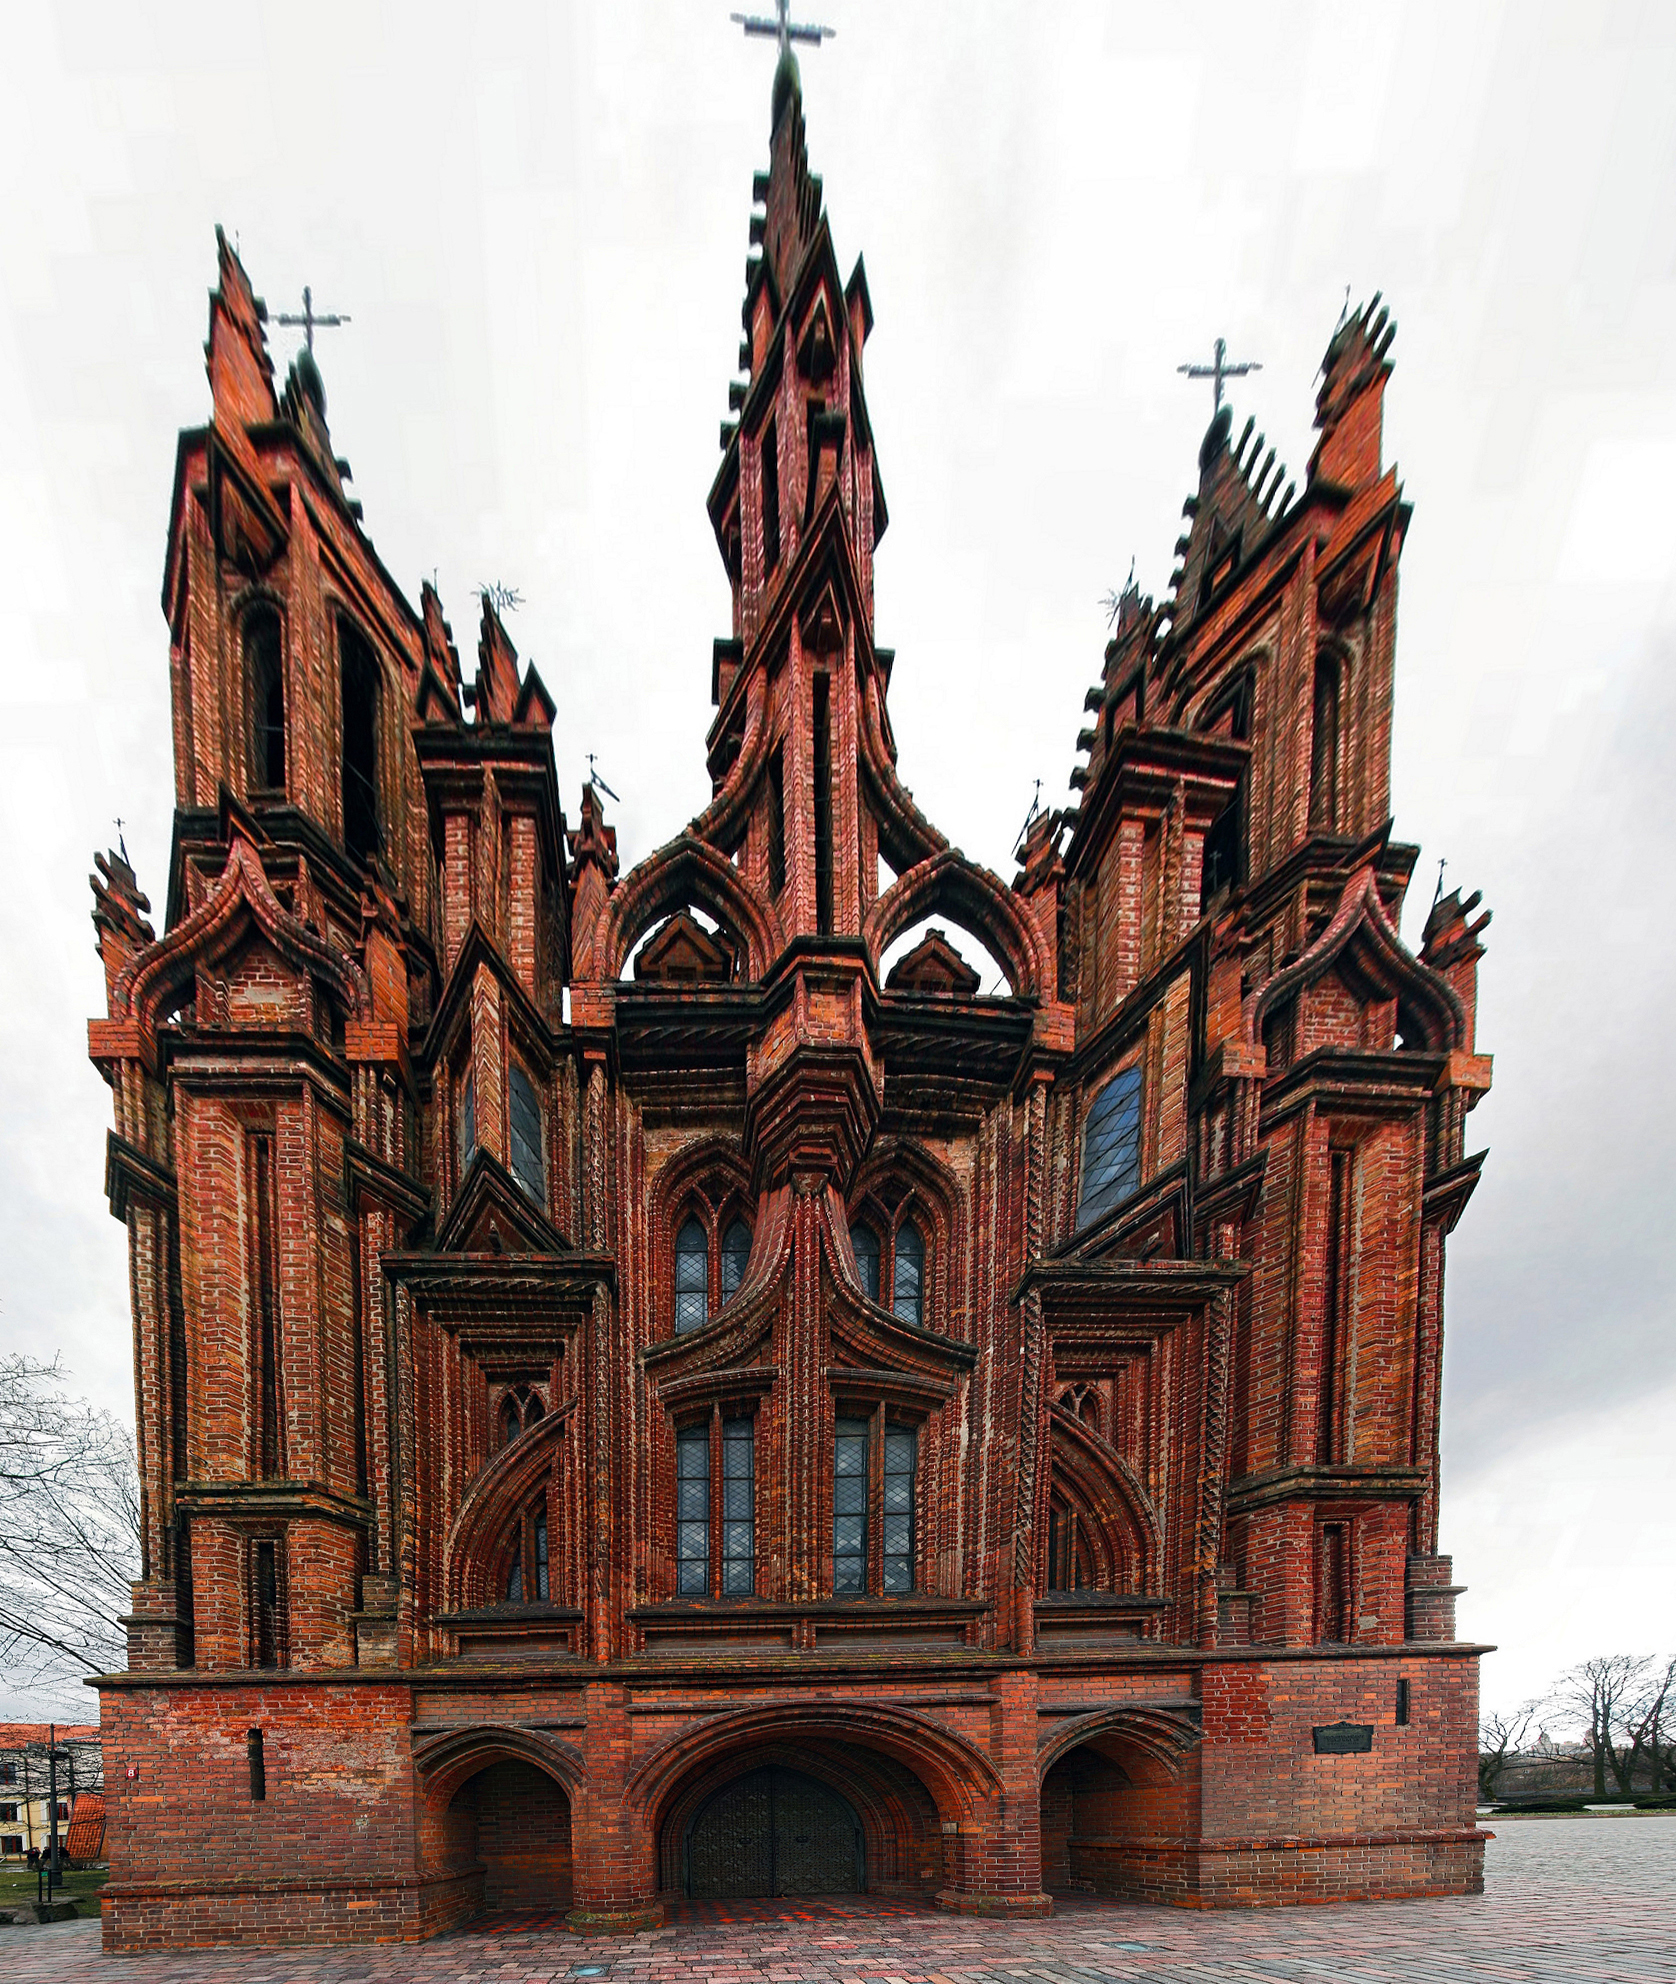 Best Comedy Movie Quotes Of All Time: St. Anne's Church In Vilnius, Lithuania. A Prominent